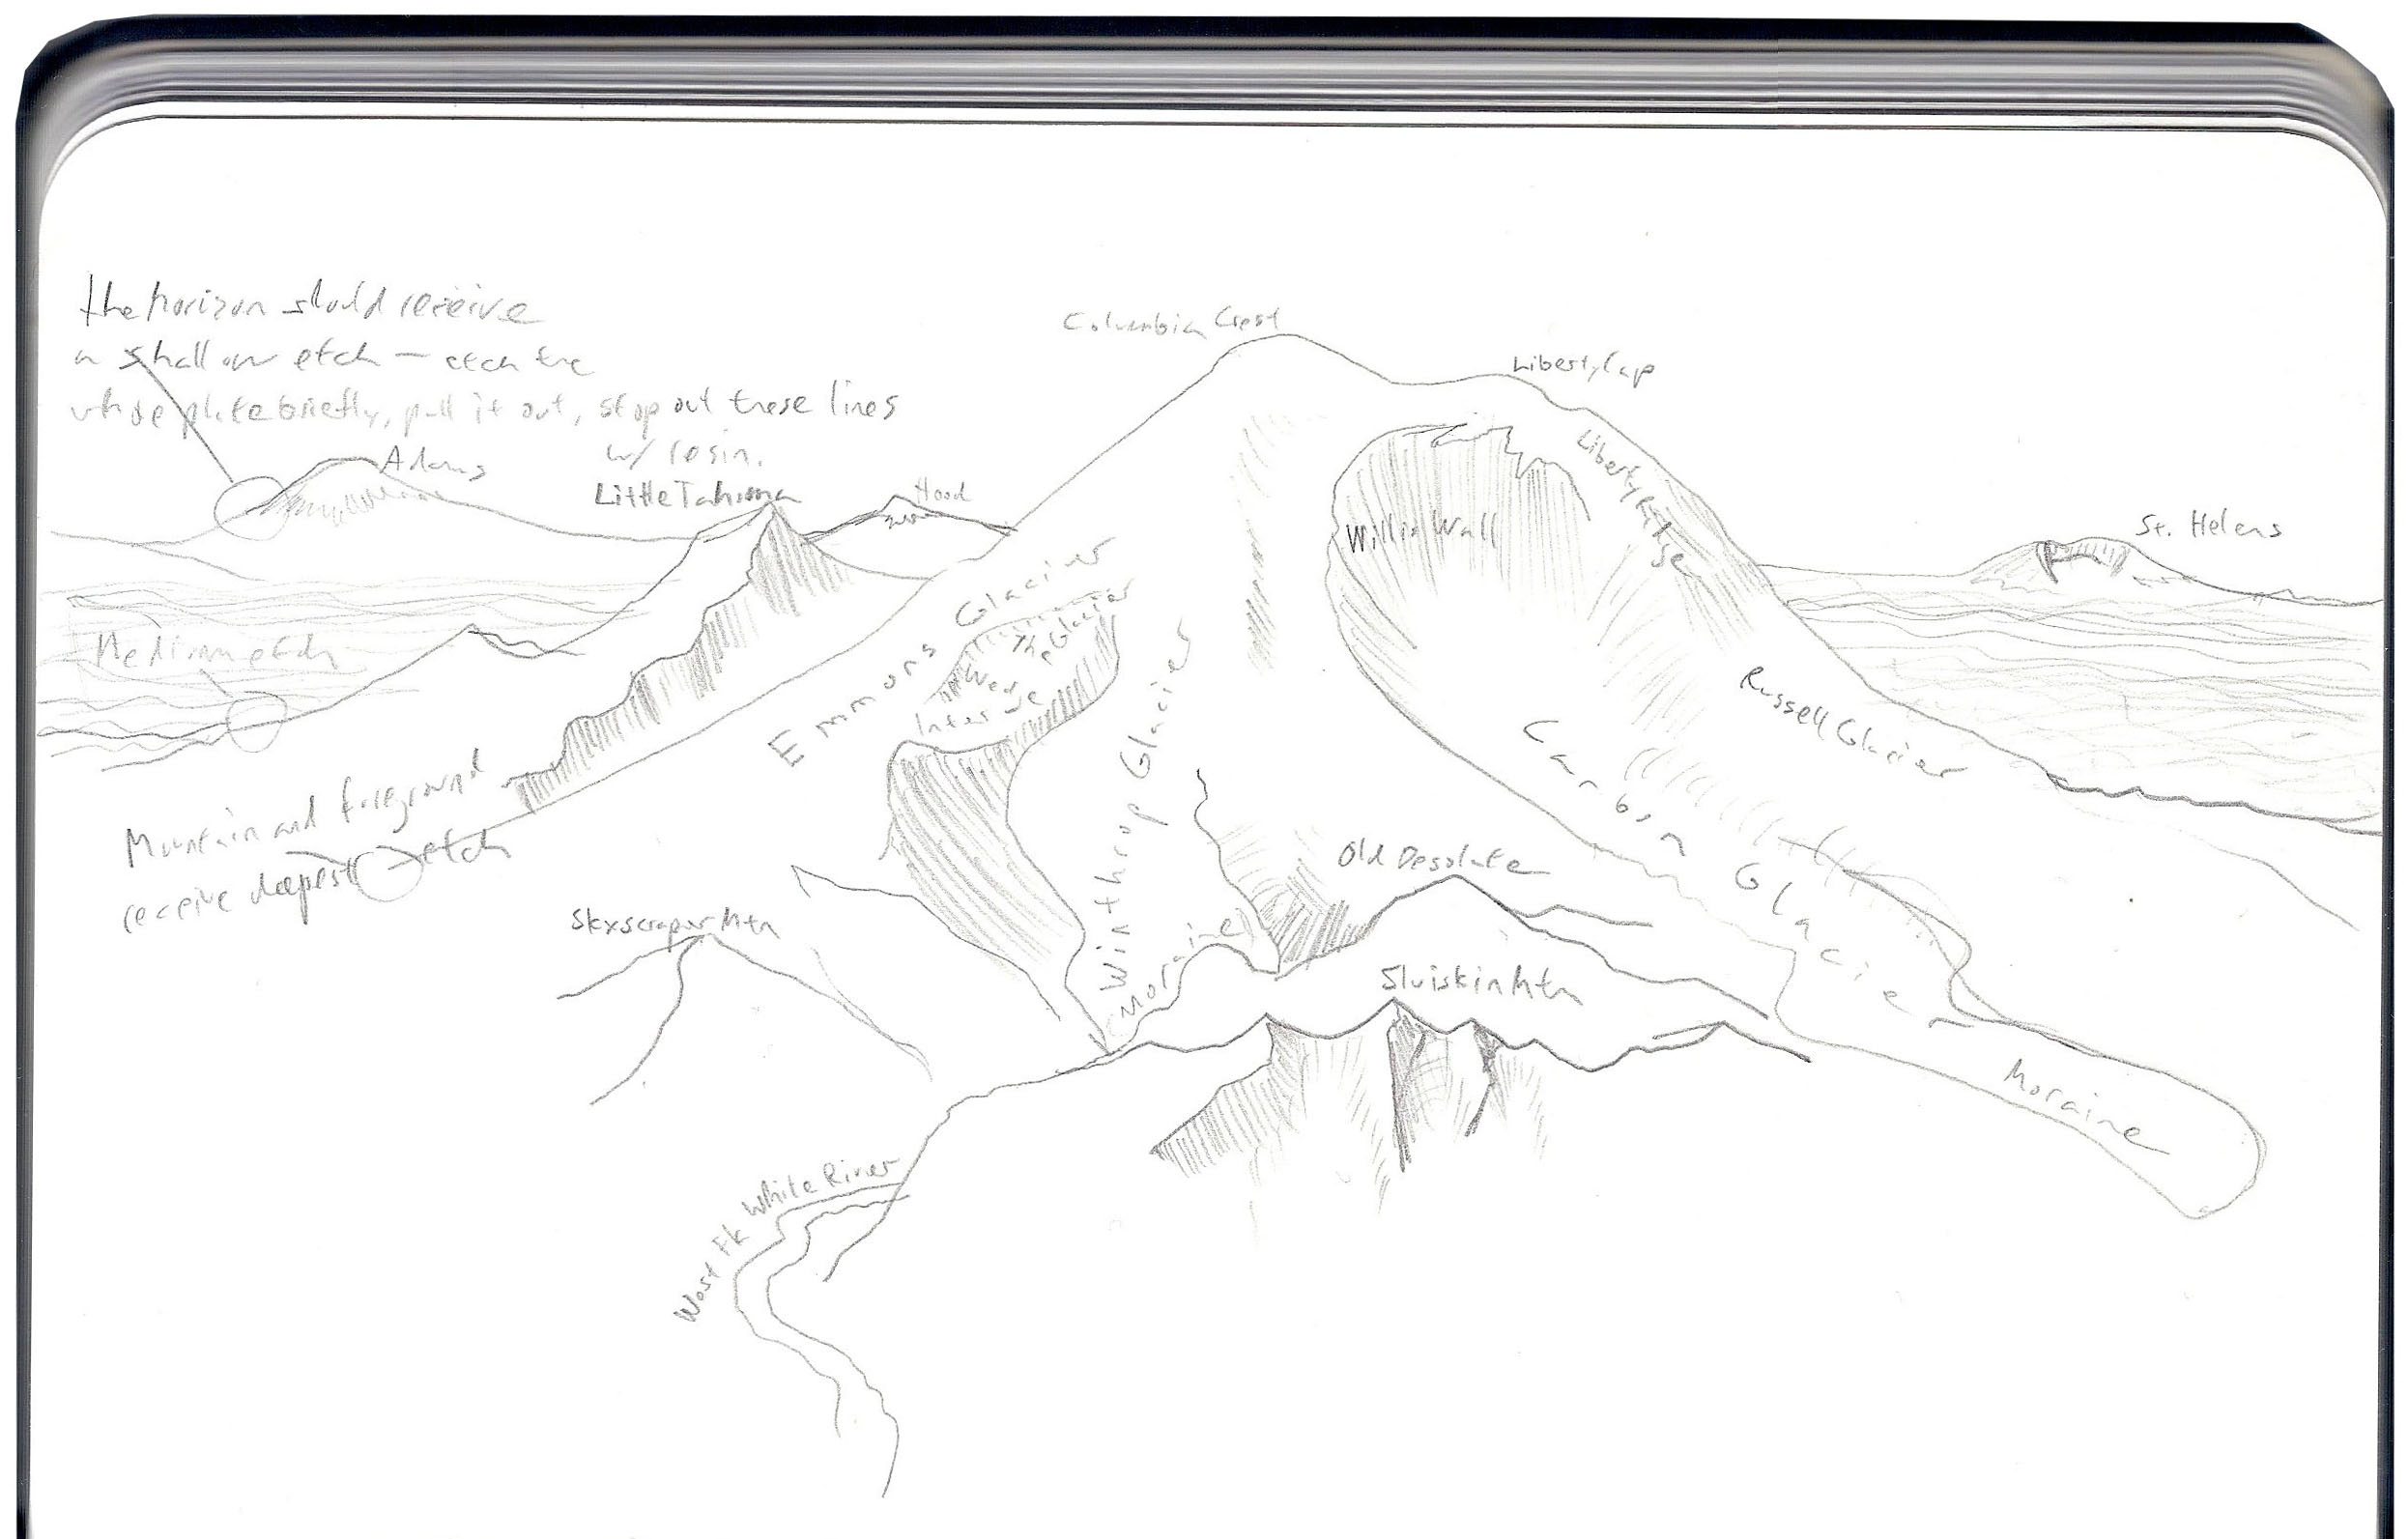 early concept sketch of Mt. Rainier map